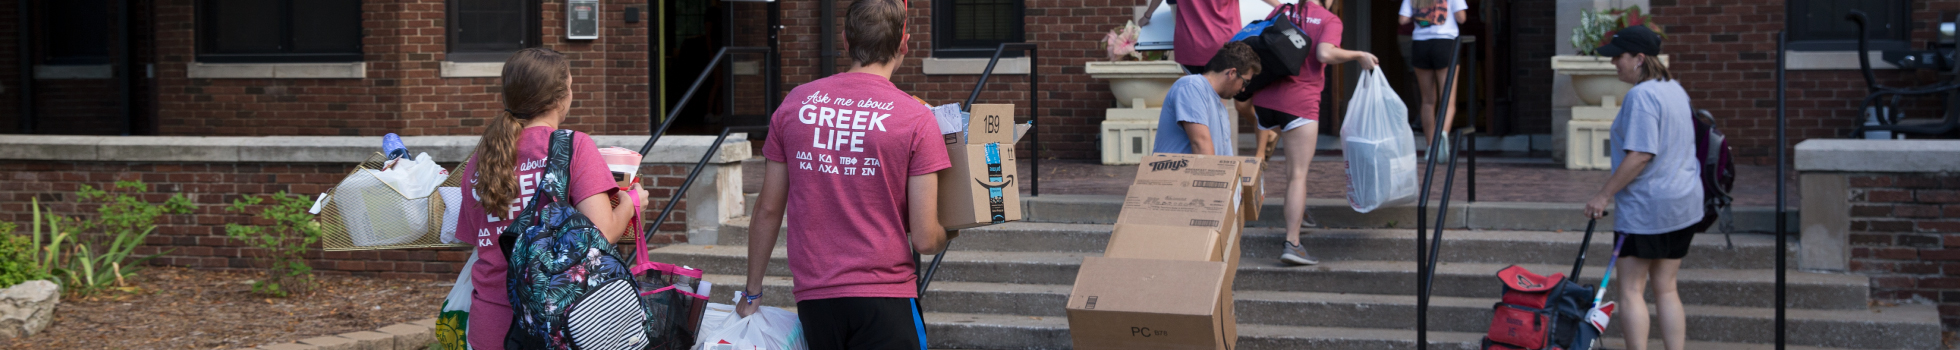 Students moving into dorms.